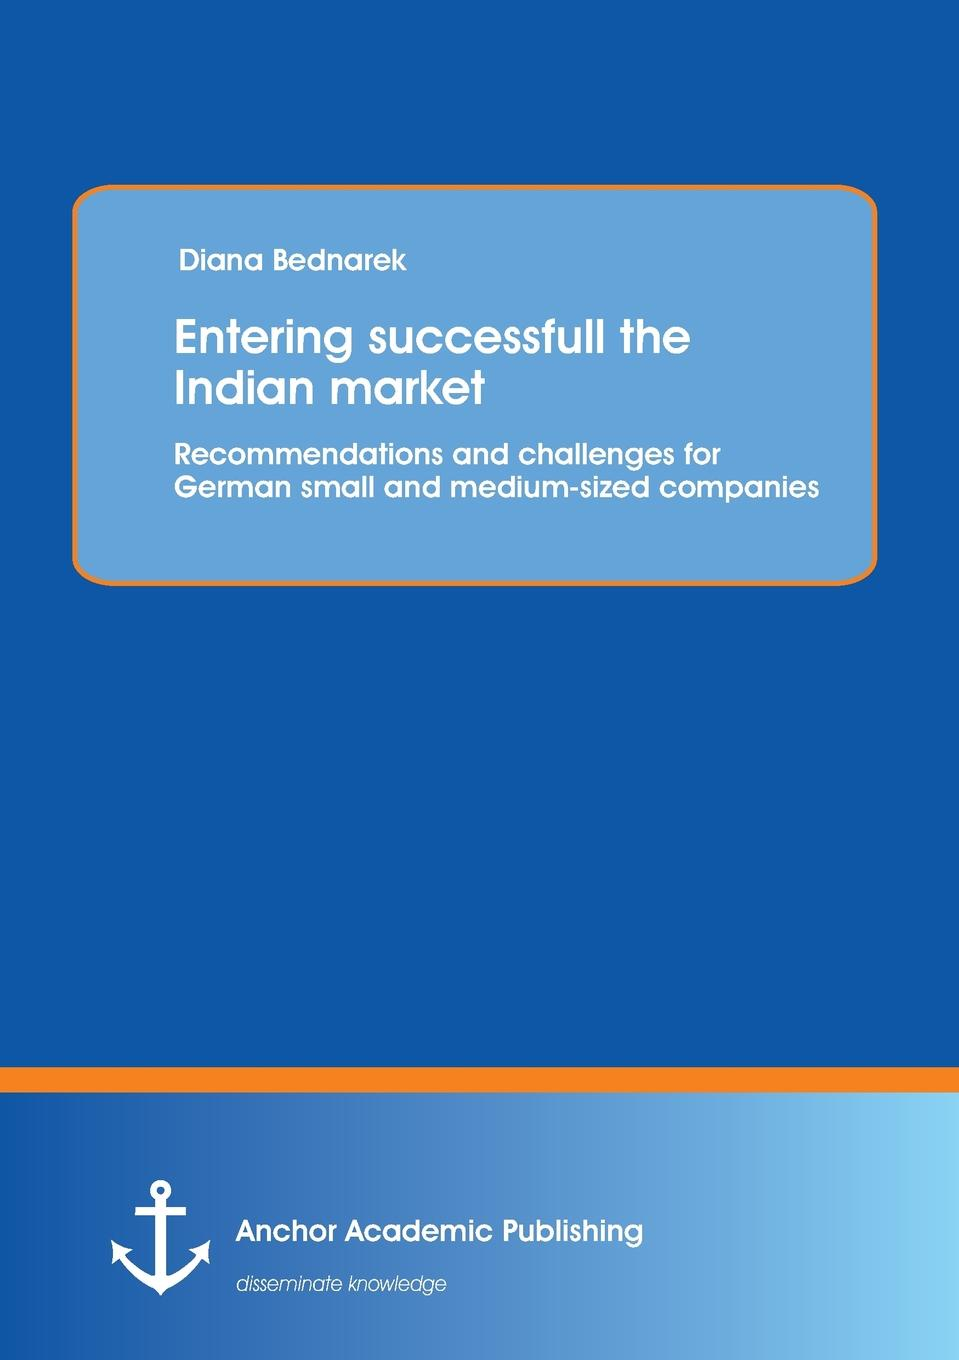 Diana Bednarek Entering successfull the Indian market. Recommendations and challenges for German small and medium-sized companeies barriers